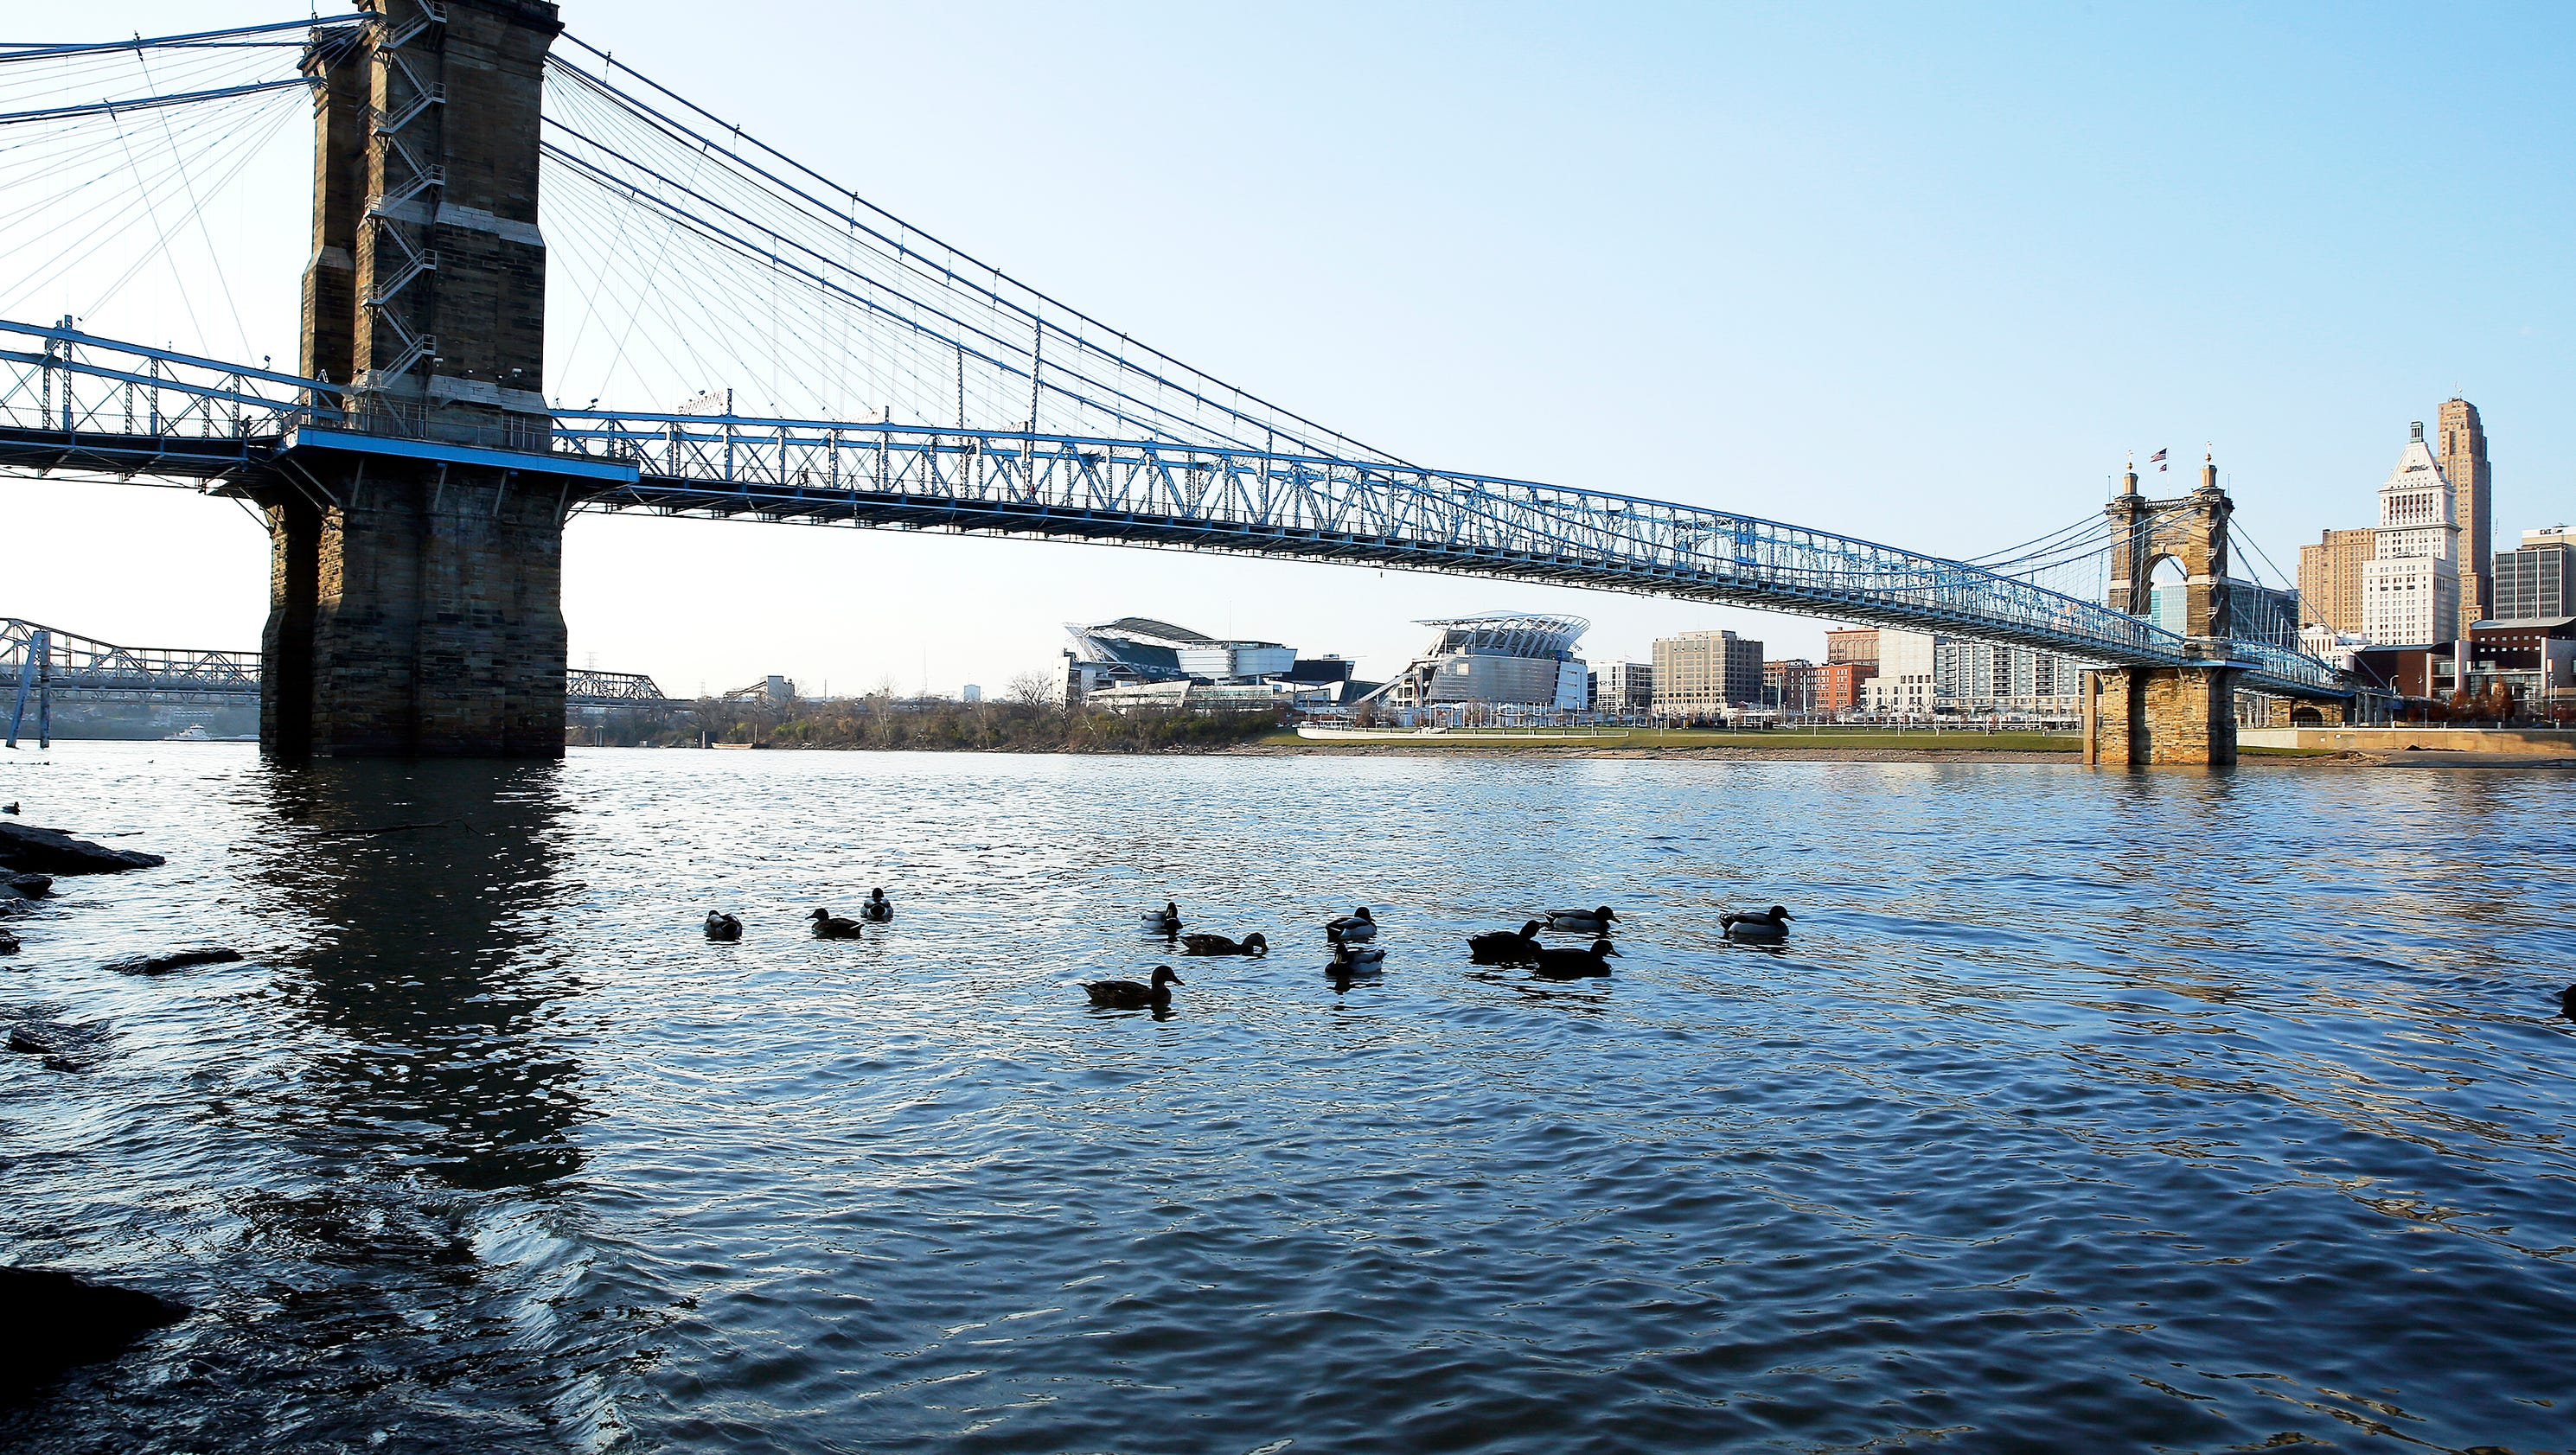 More Floods Heat For Cincy Ohio Valley Due To Climate